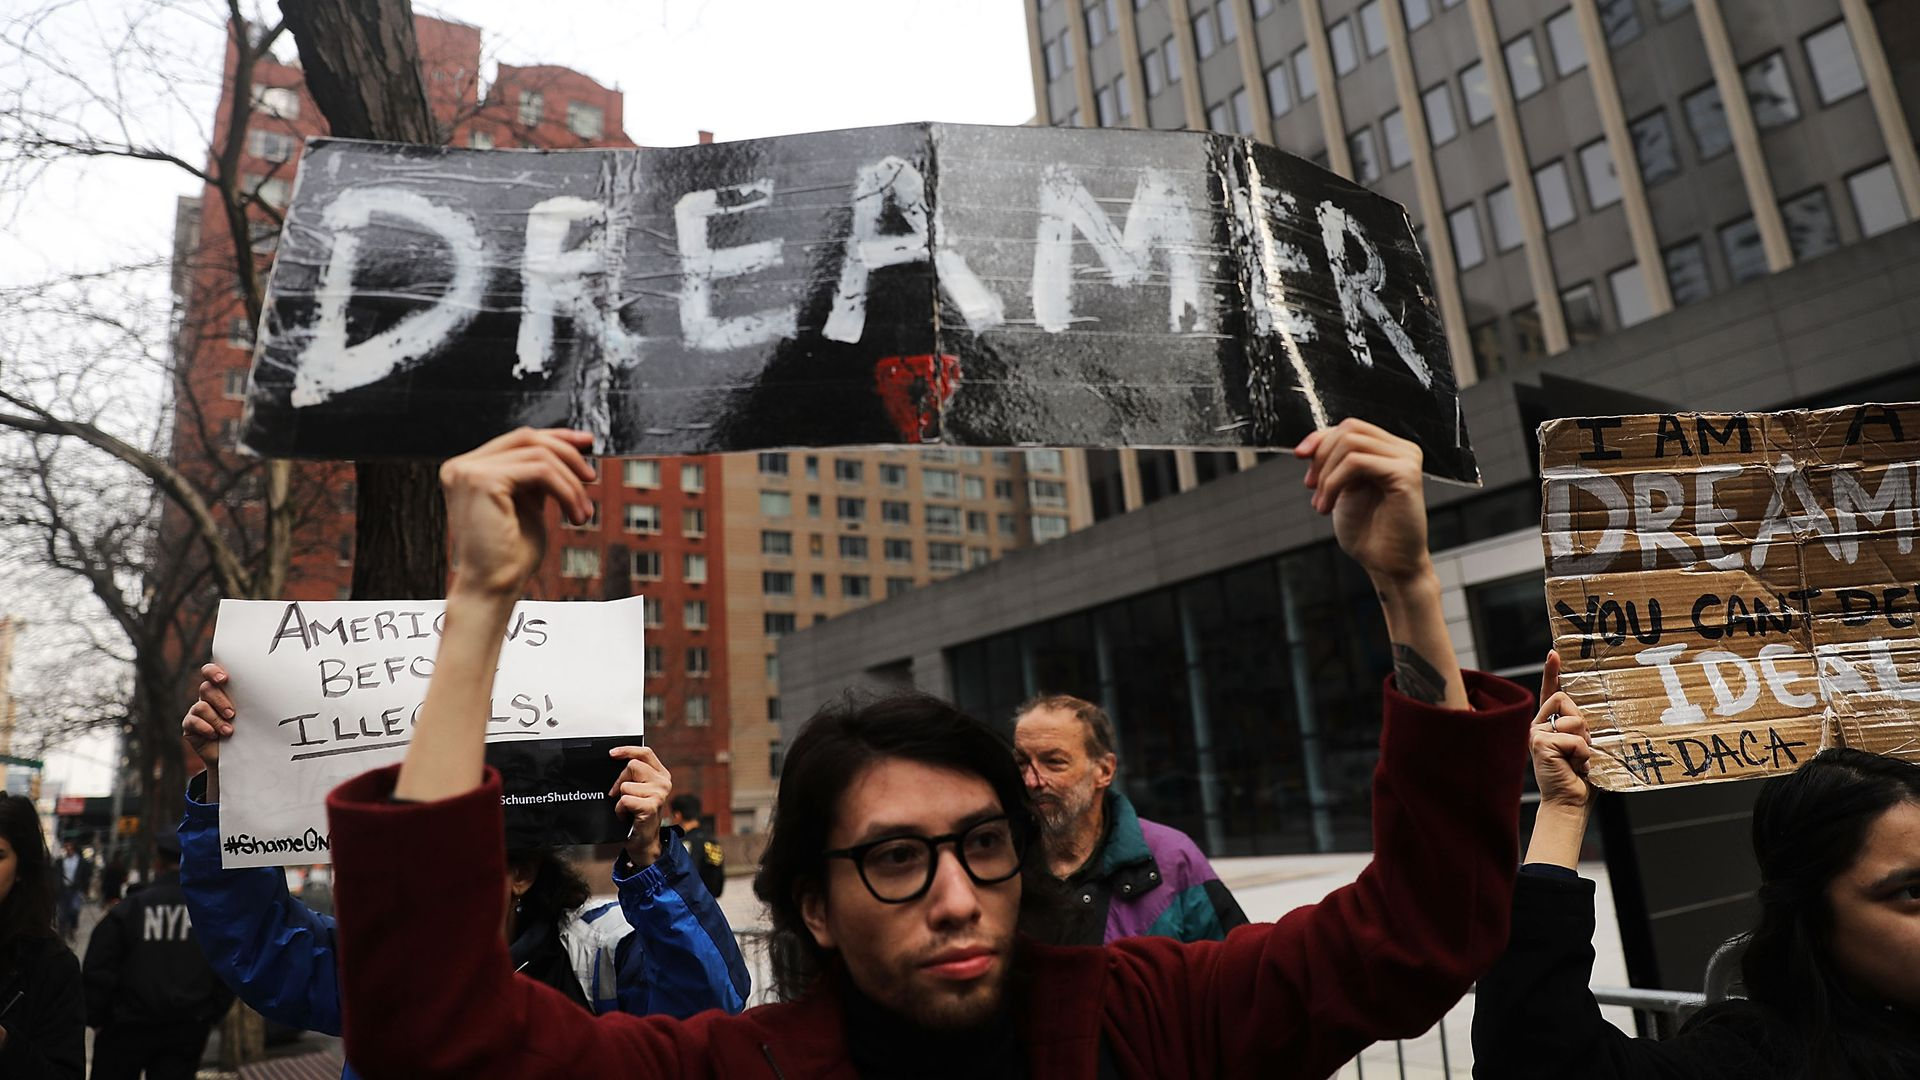 Demonstrator at a pro-immigration rally in New York City.